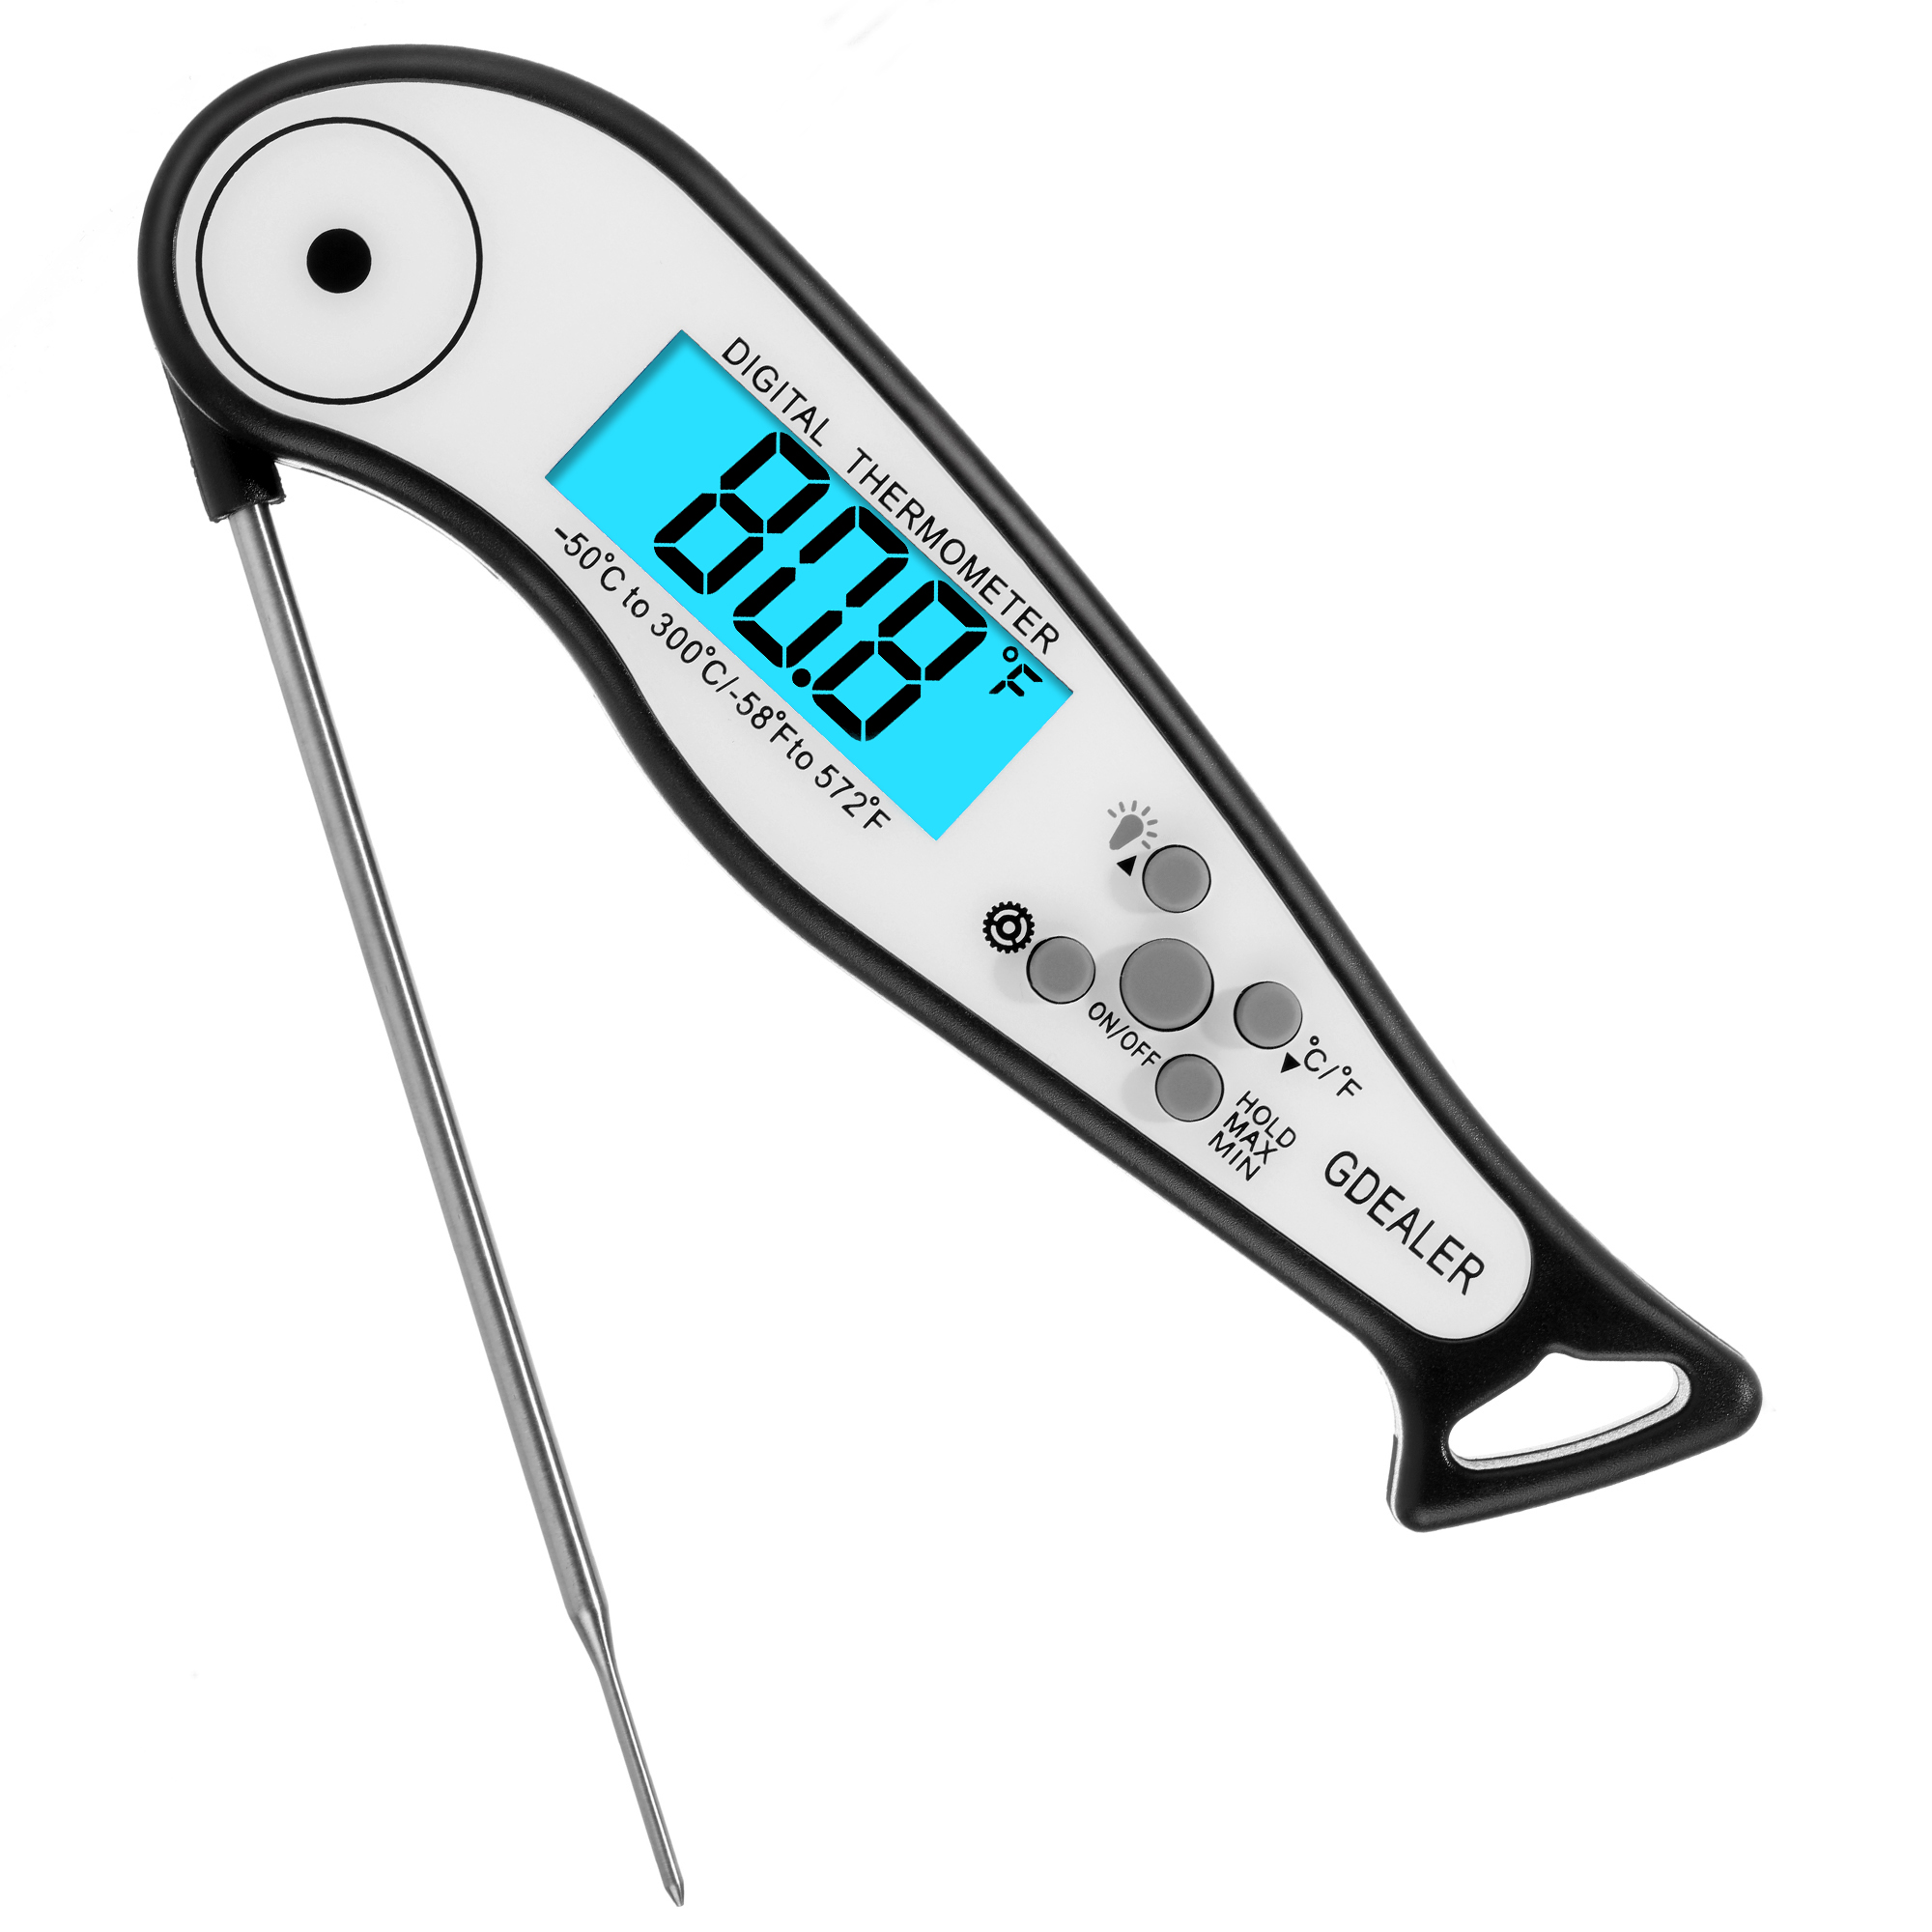 GDEALER Alarm Meat Thermometer Waterproof Super Fast Instant Read Thermometer with Calibration Function Back-lit Digital BBQ thermometer Kitchen Cook Thermometer for Grill Smoker Food,Candy,Milk by GDEALER